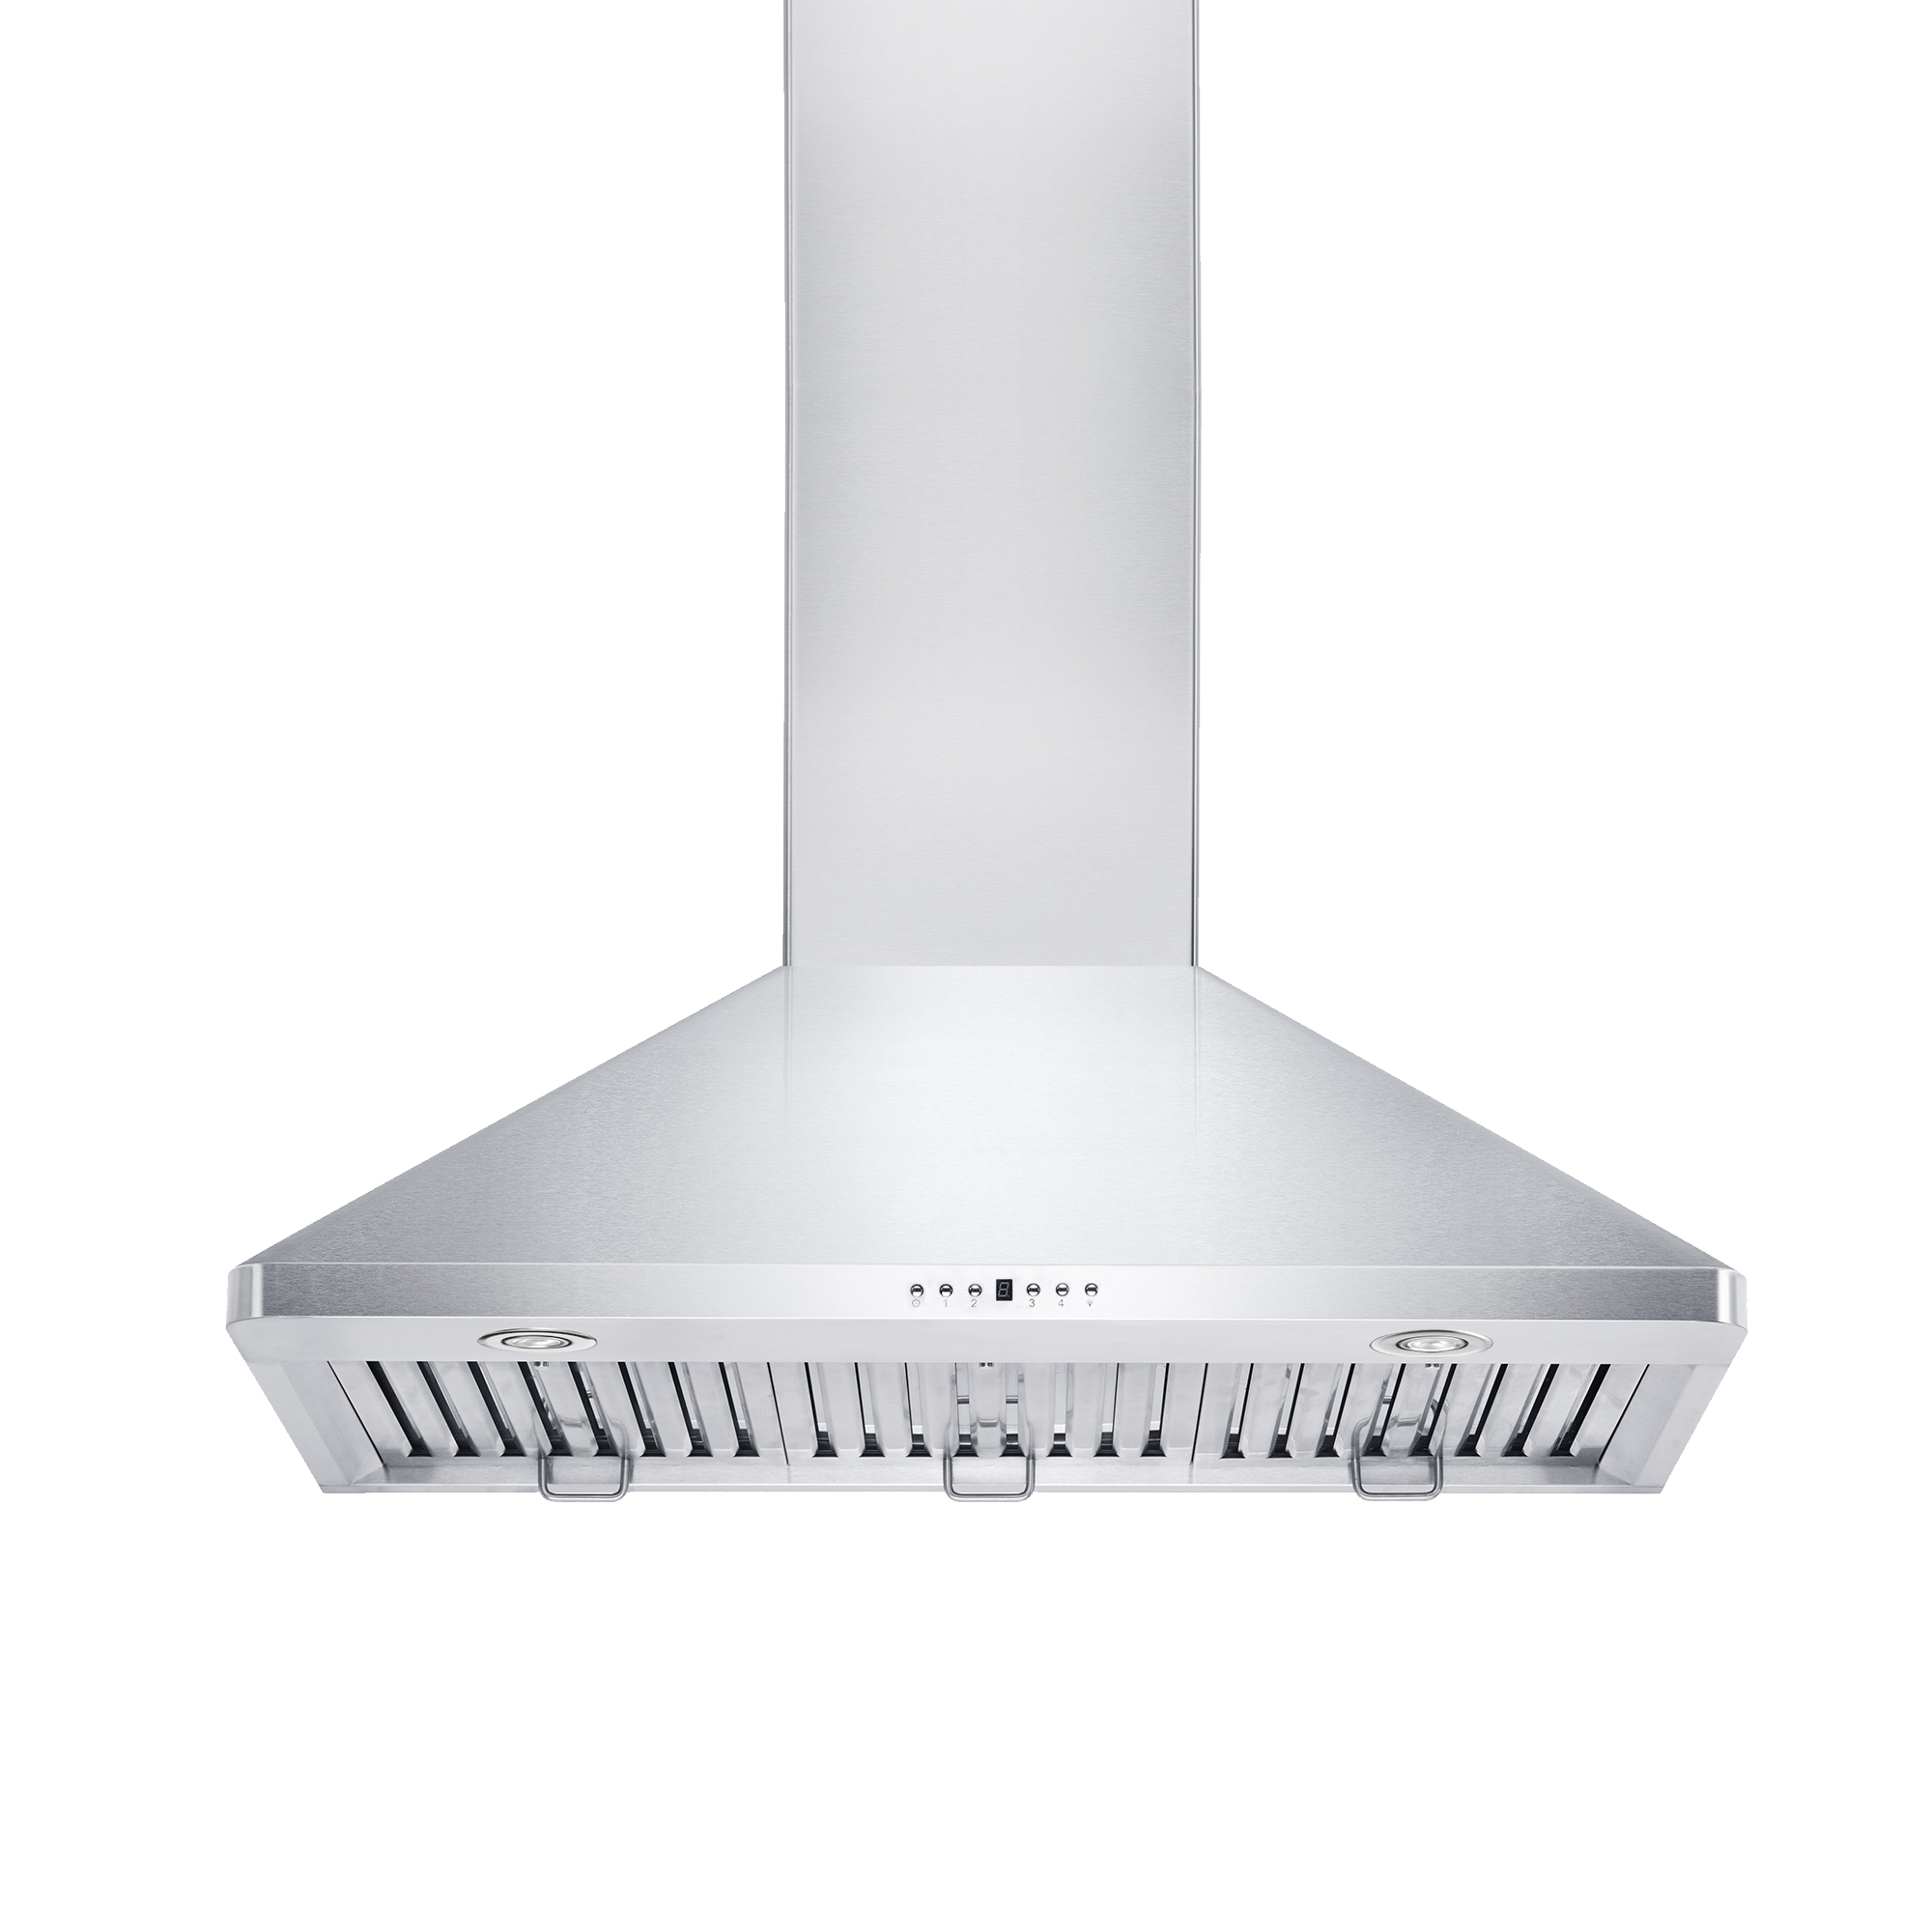 zline-stainless-steel-wall-mounted-range-hood-KF1-underneath.jpg